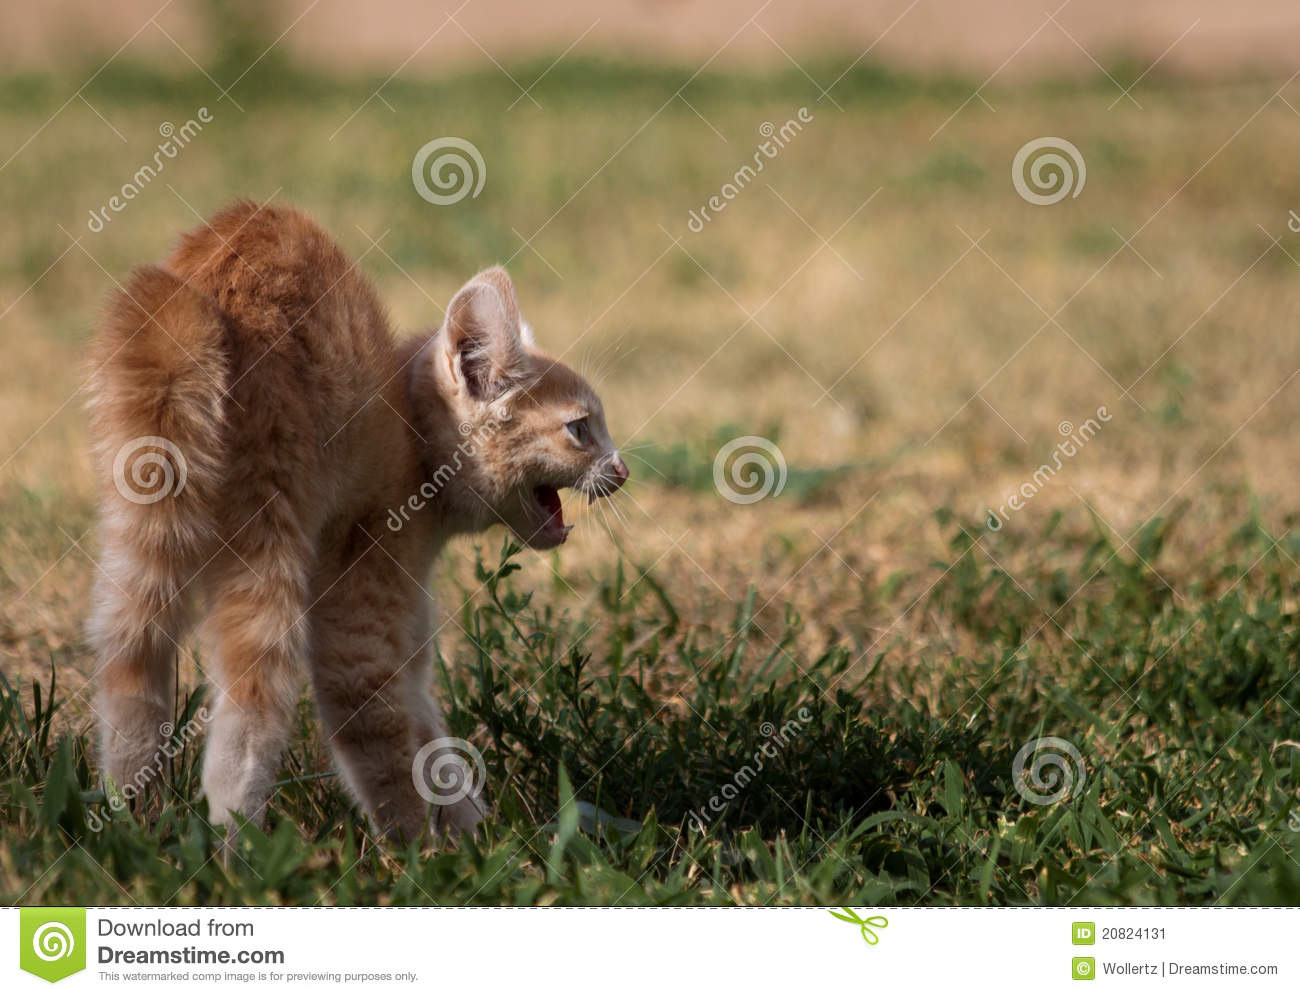 Angry kitten stock image  Image of park, home, idaho - 20824131